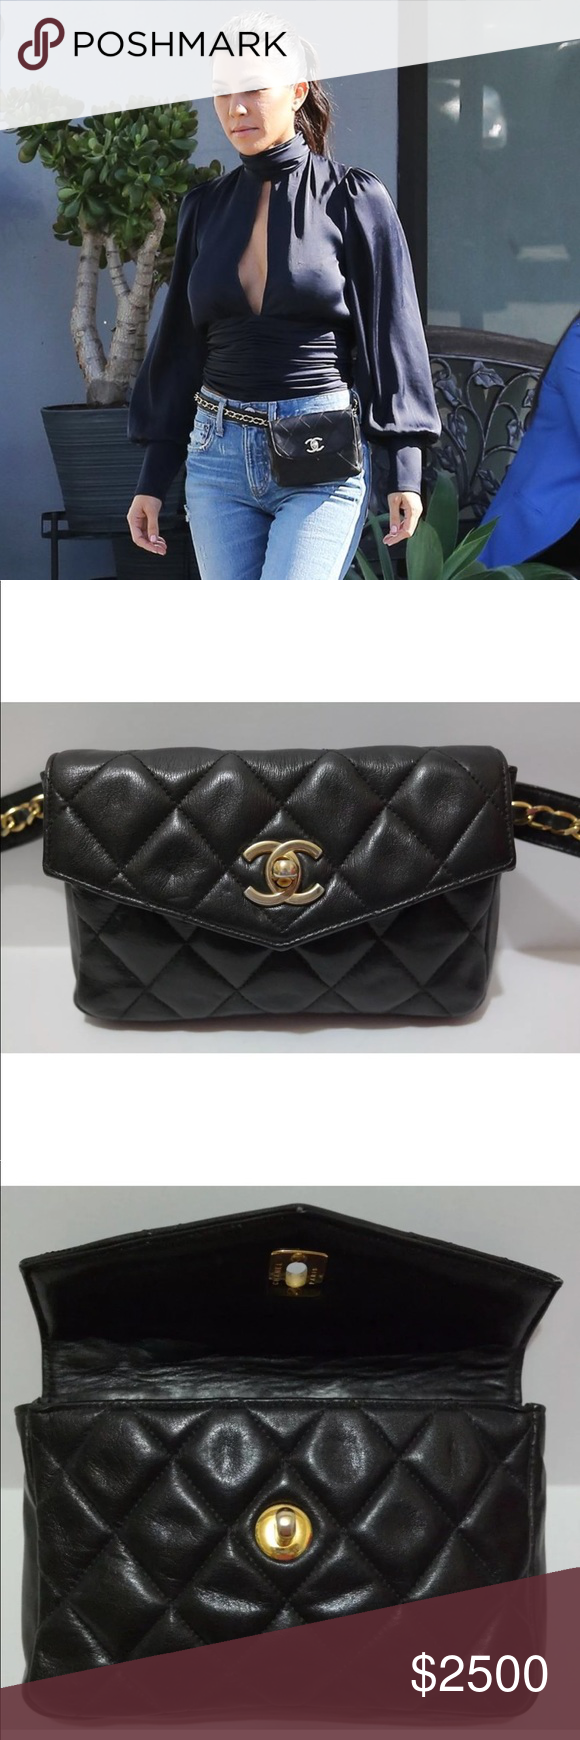 2ad8d70a215d Chanel Quilted CC Bum Fanny Pack Bag RARE As seen on celebrities, hottest  item of